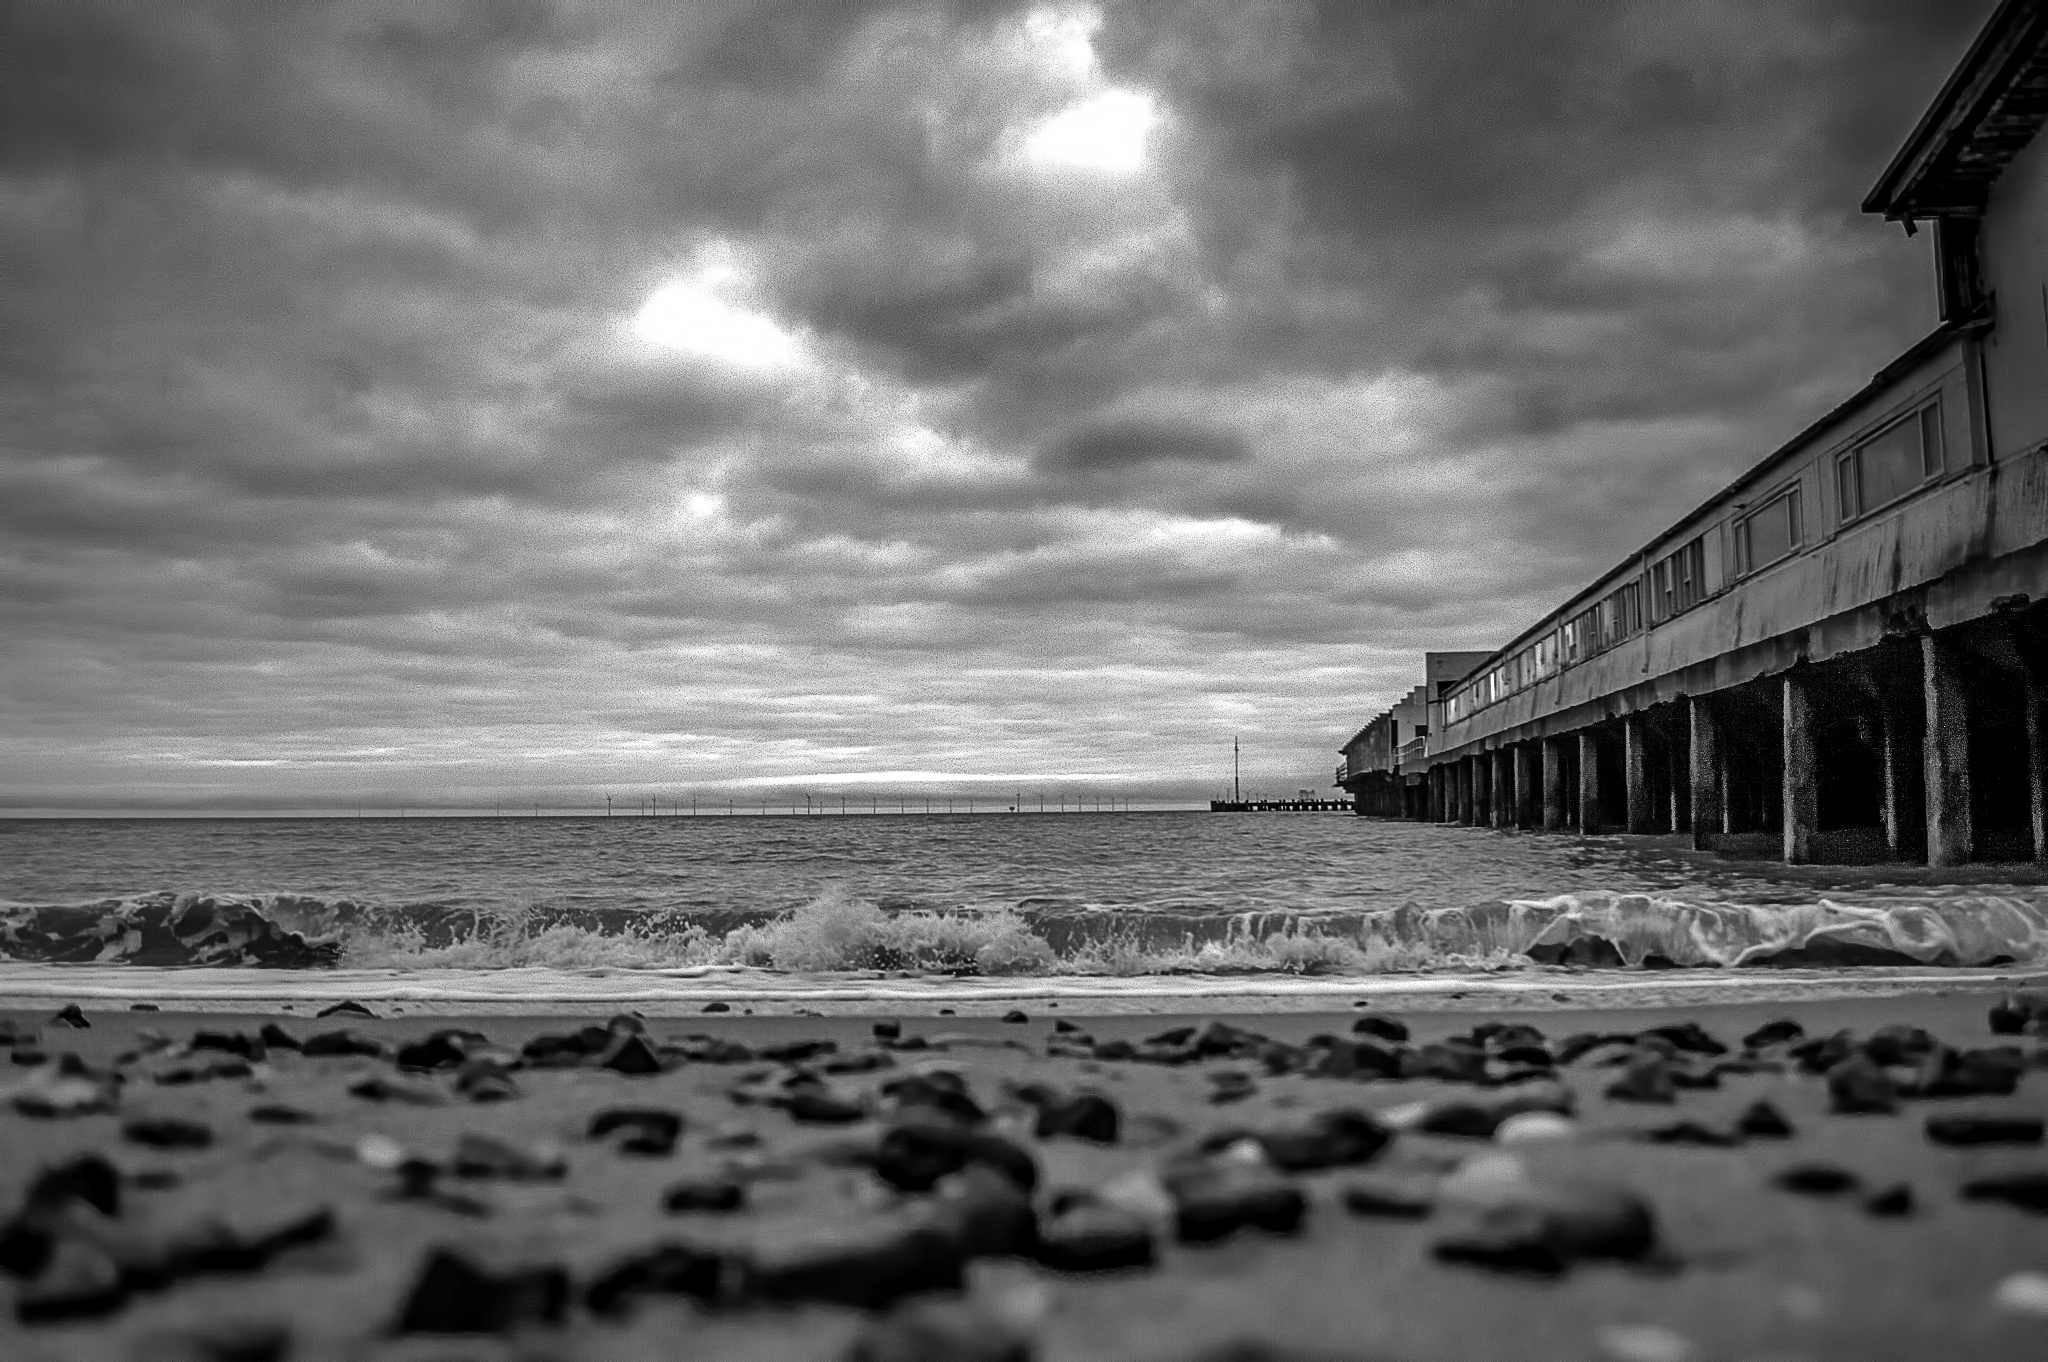 At the Seaside by Darrin Mayo